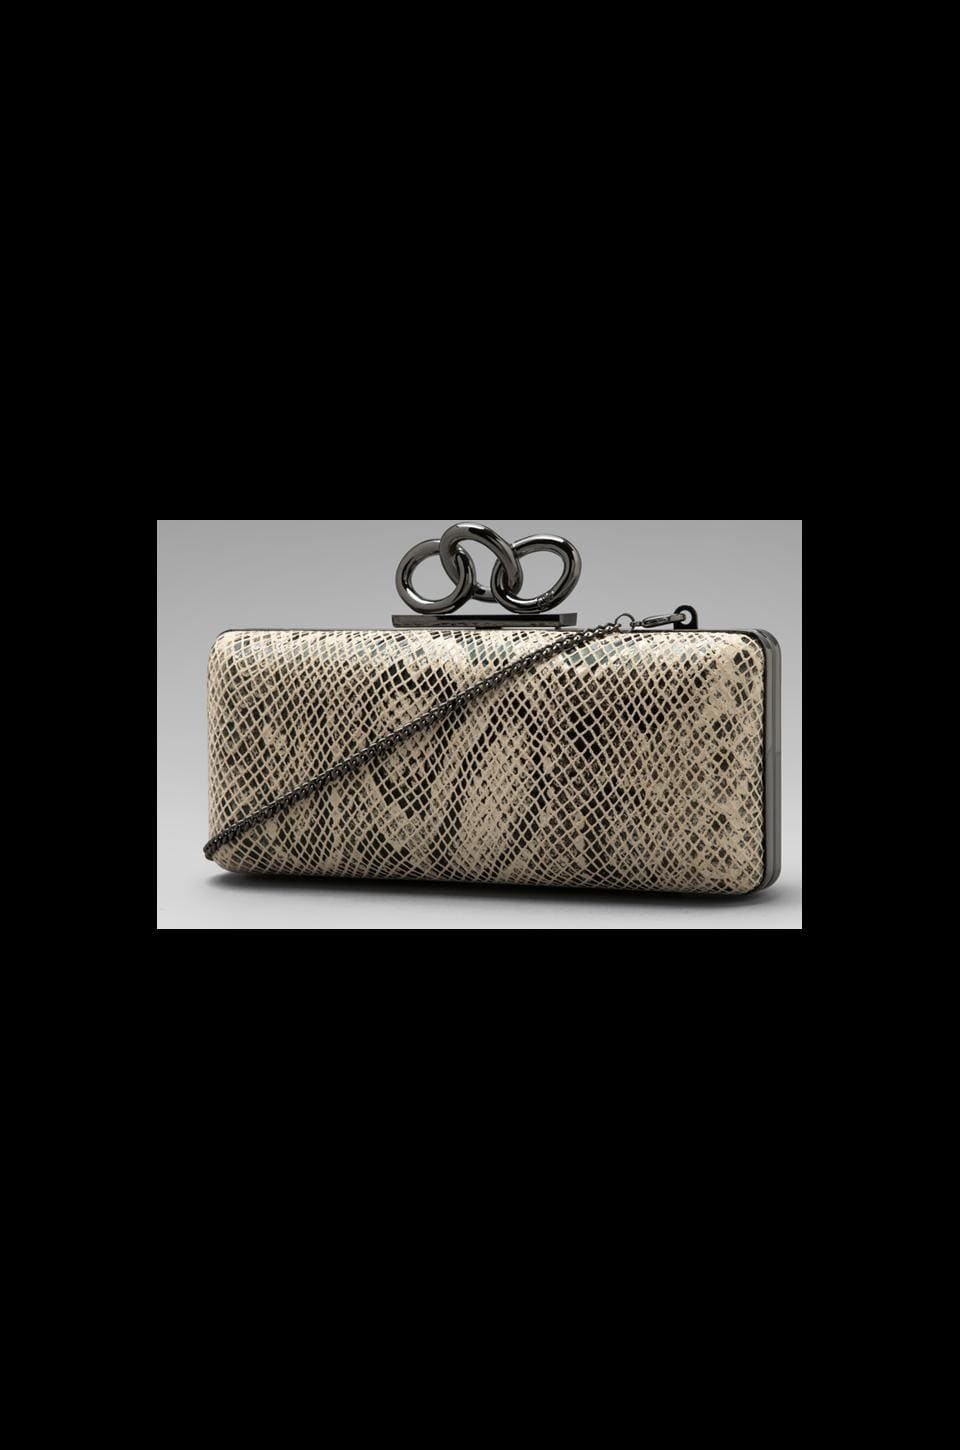 Diane von Furstenberg Stura Mini Clutch in Natural Snake